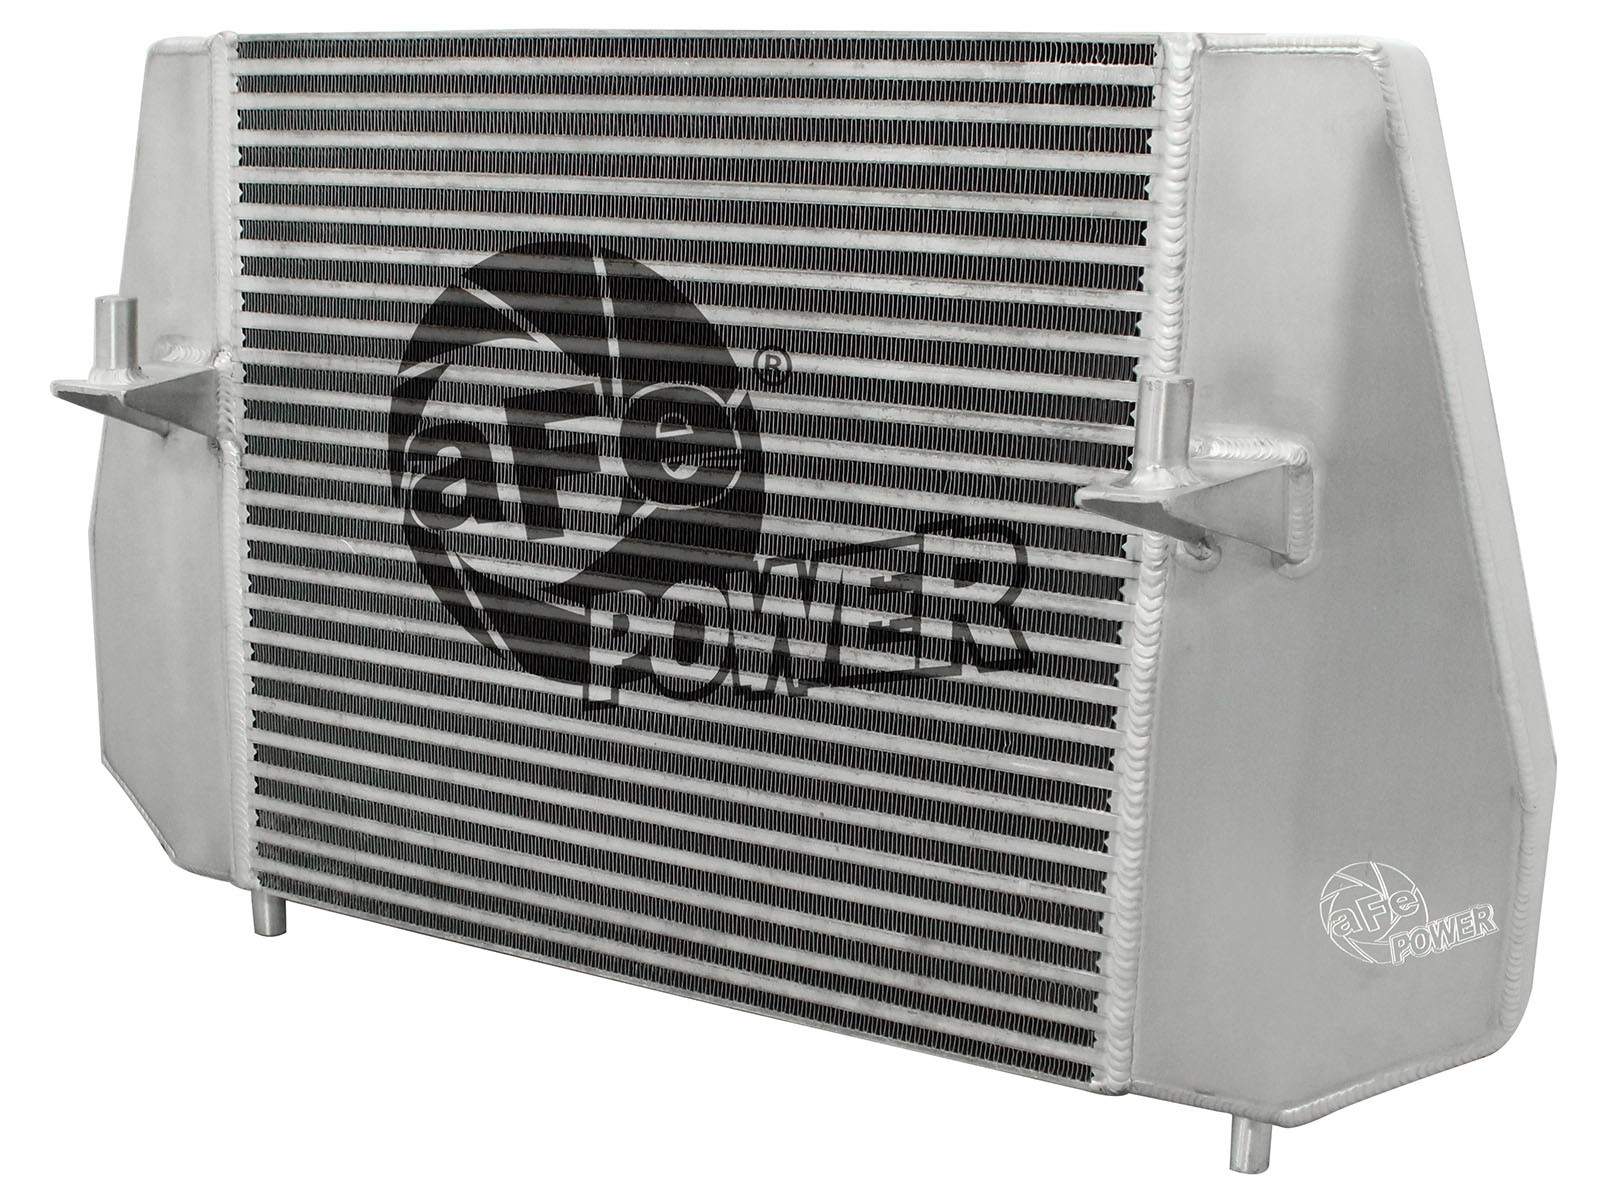 aFe POWER 46-20161 BladeRunner GT Series Intercooler